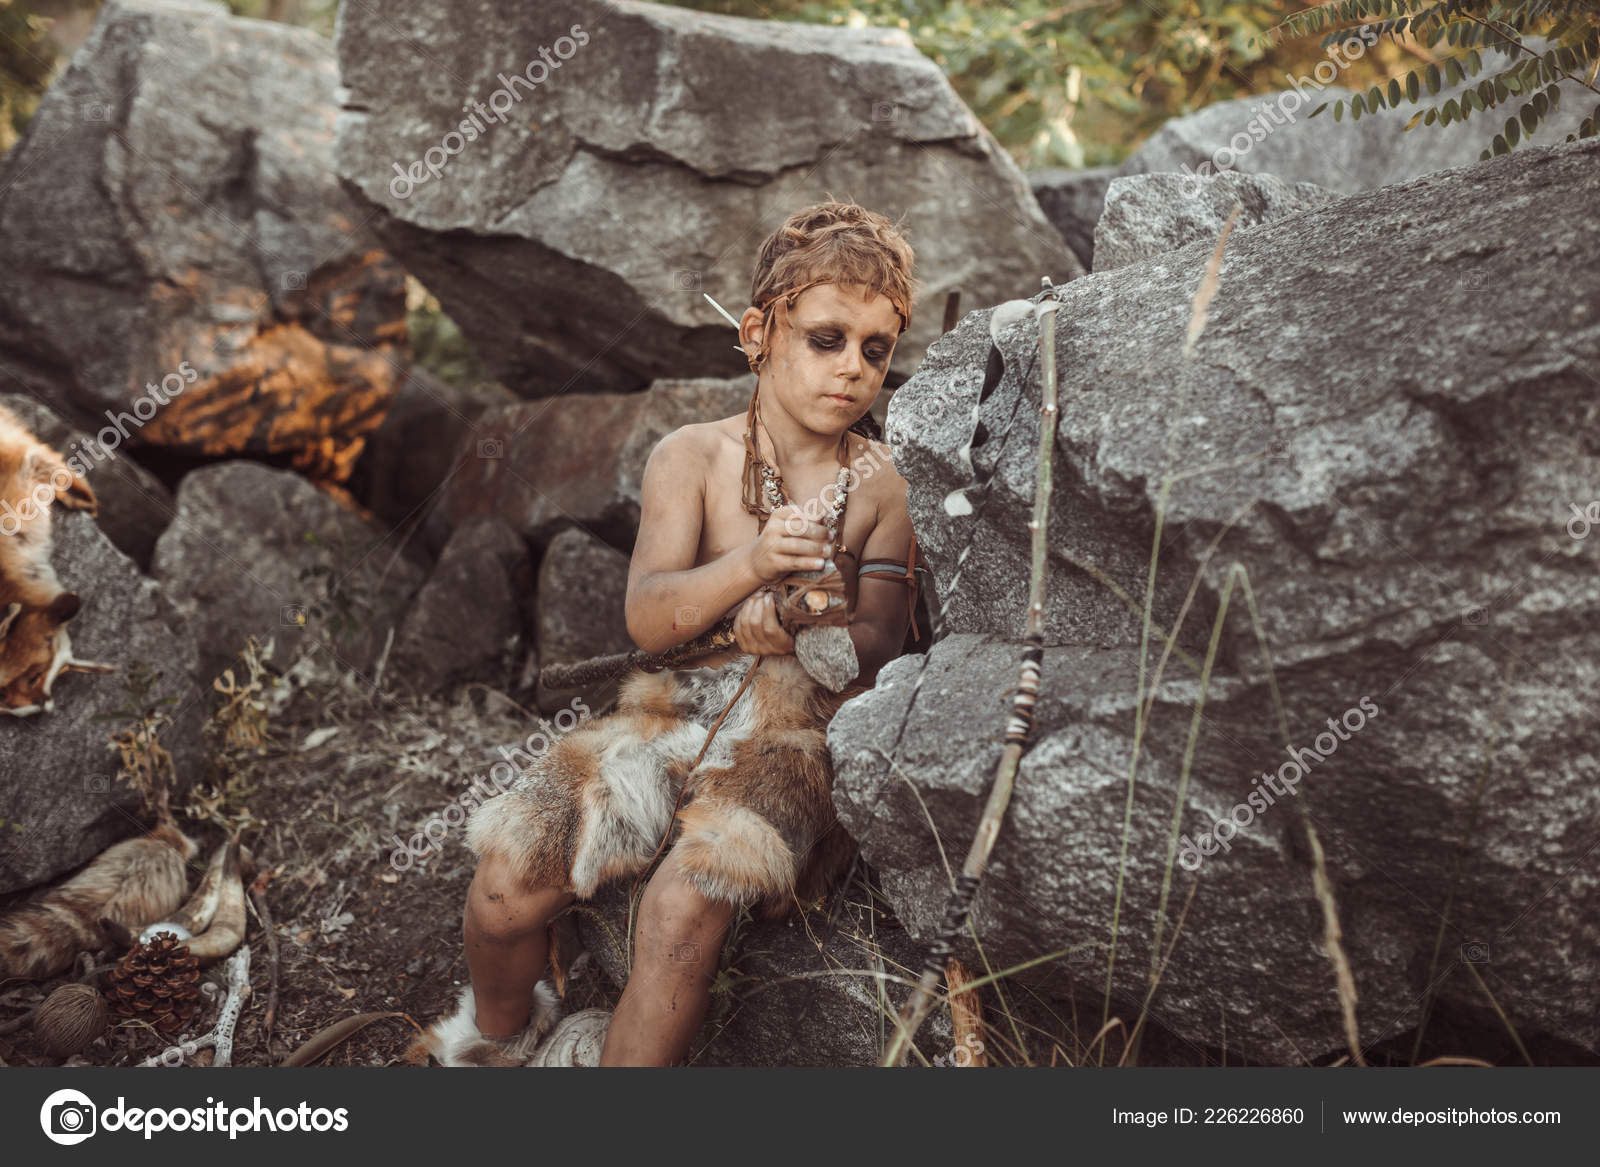 Caveman, manly boy making primitive stone weapon in camp